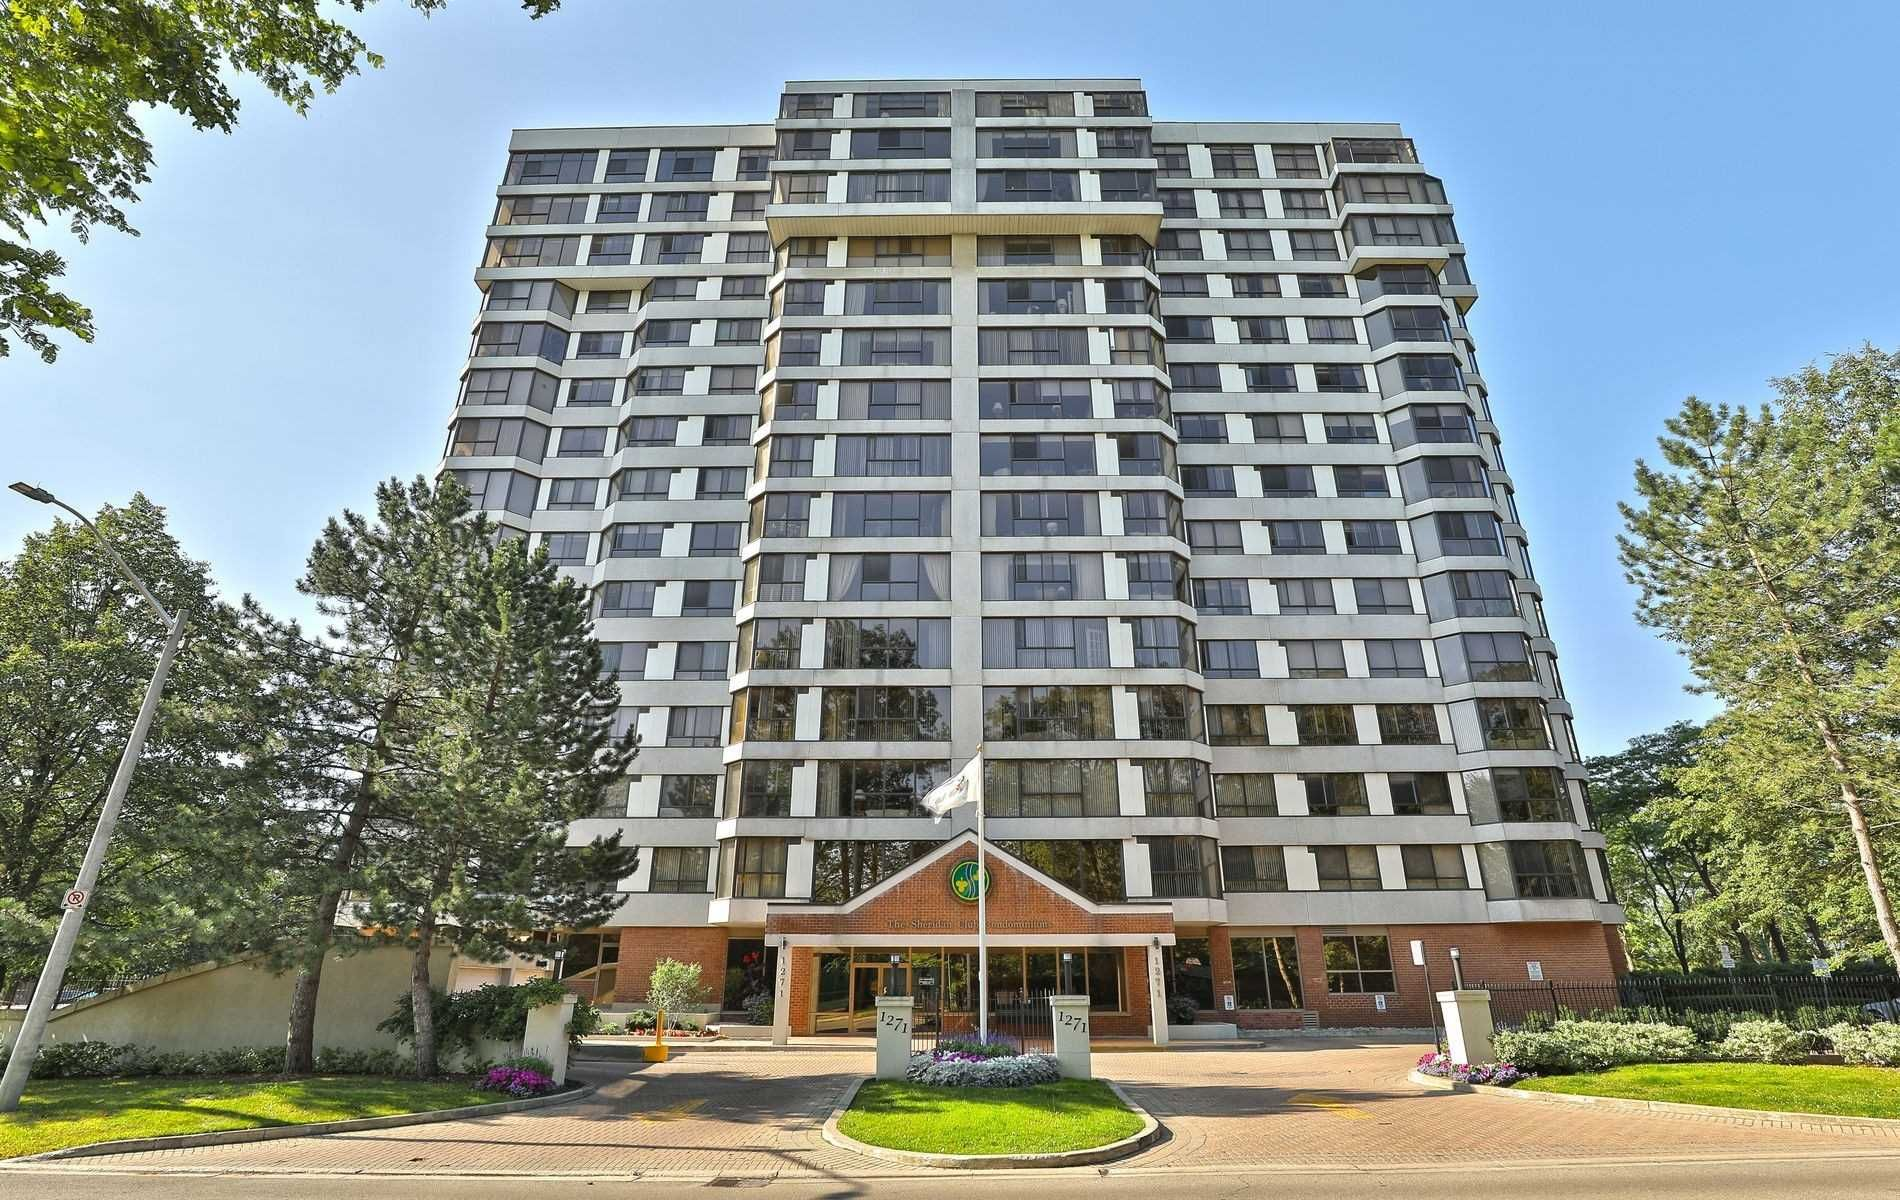 1271 Walden Circ, unit 1201 for sale in Toronto - image #1